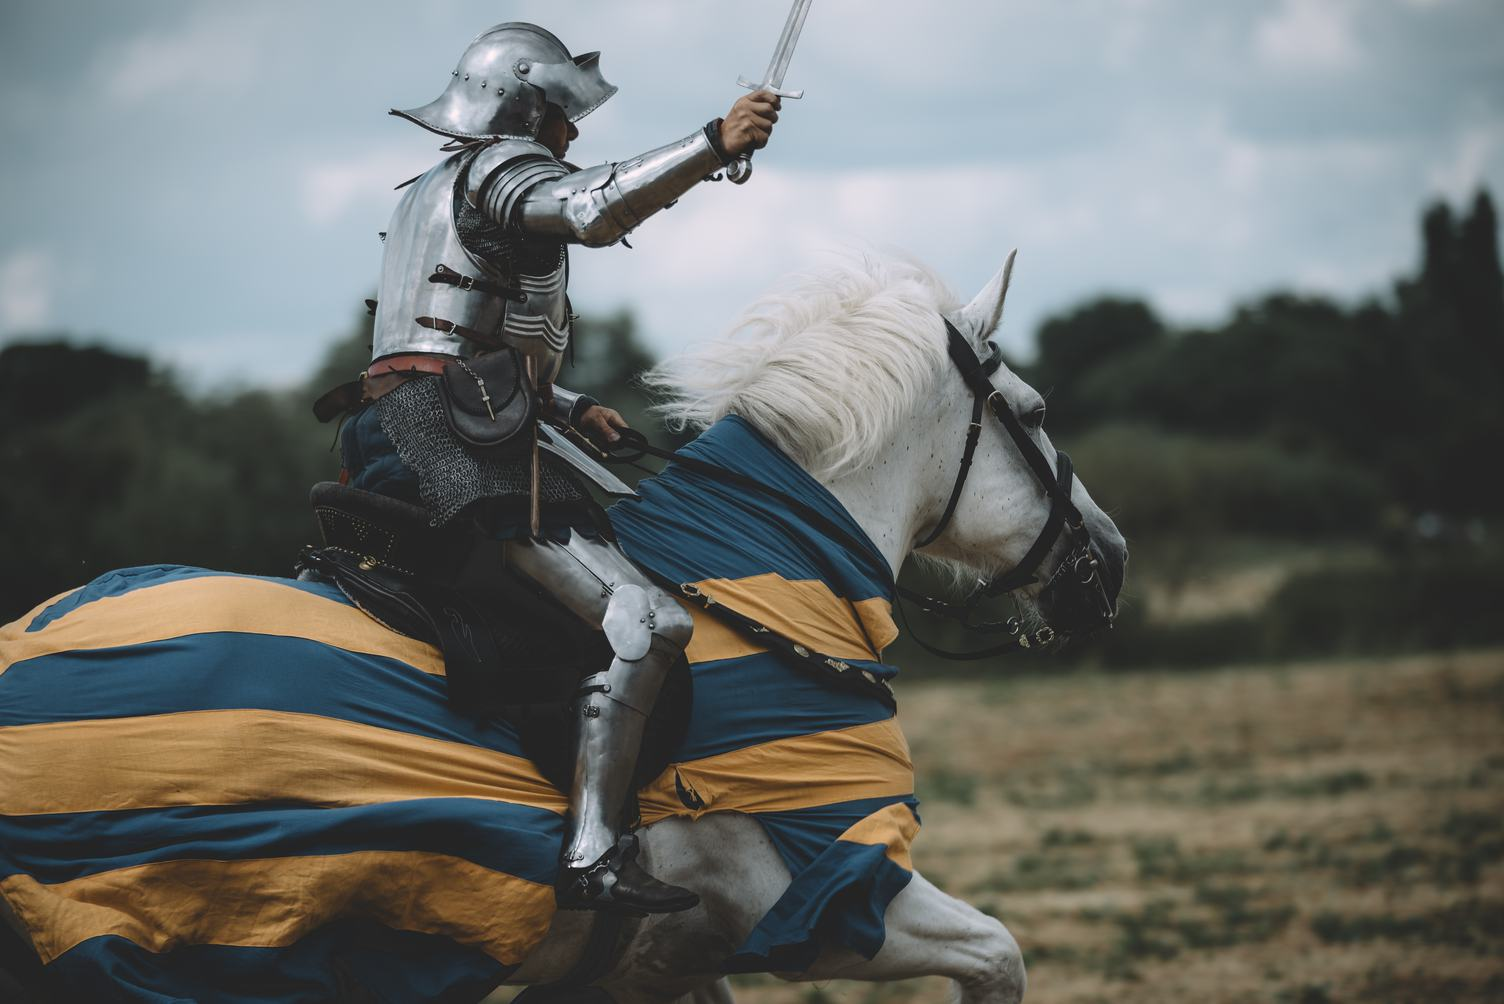 Knight Riding a Horse with Sword in His Hands